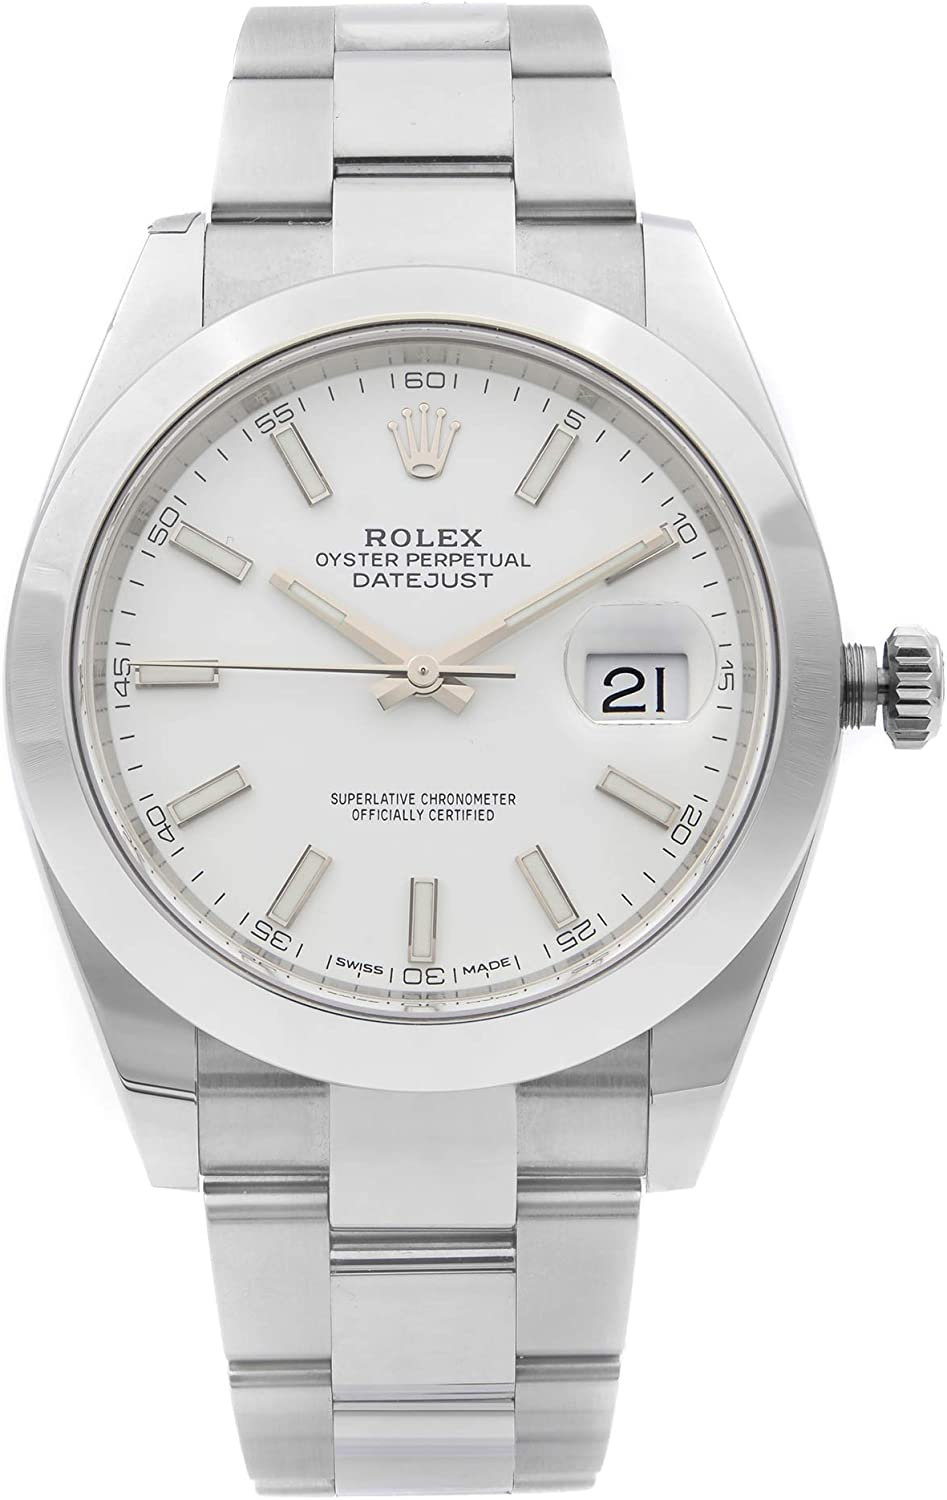 Rolex Oyster Perpetual Datejust White Dial Automatic Men's Watch 126300WSO